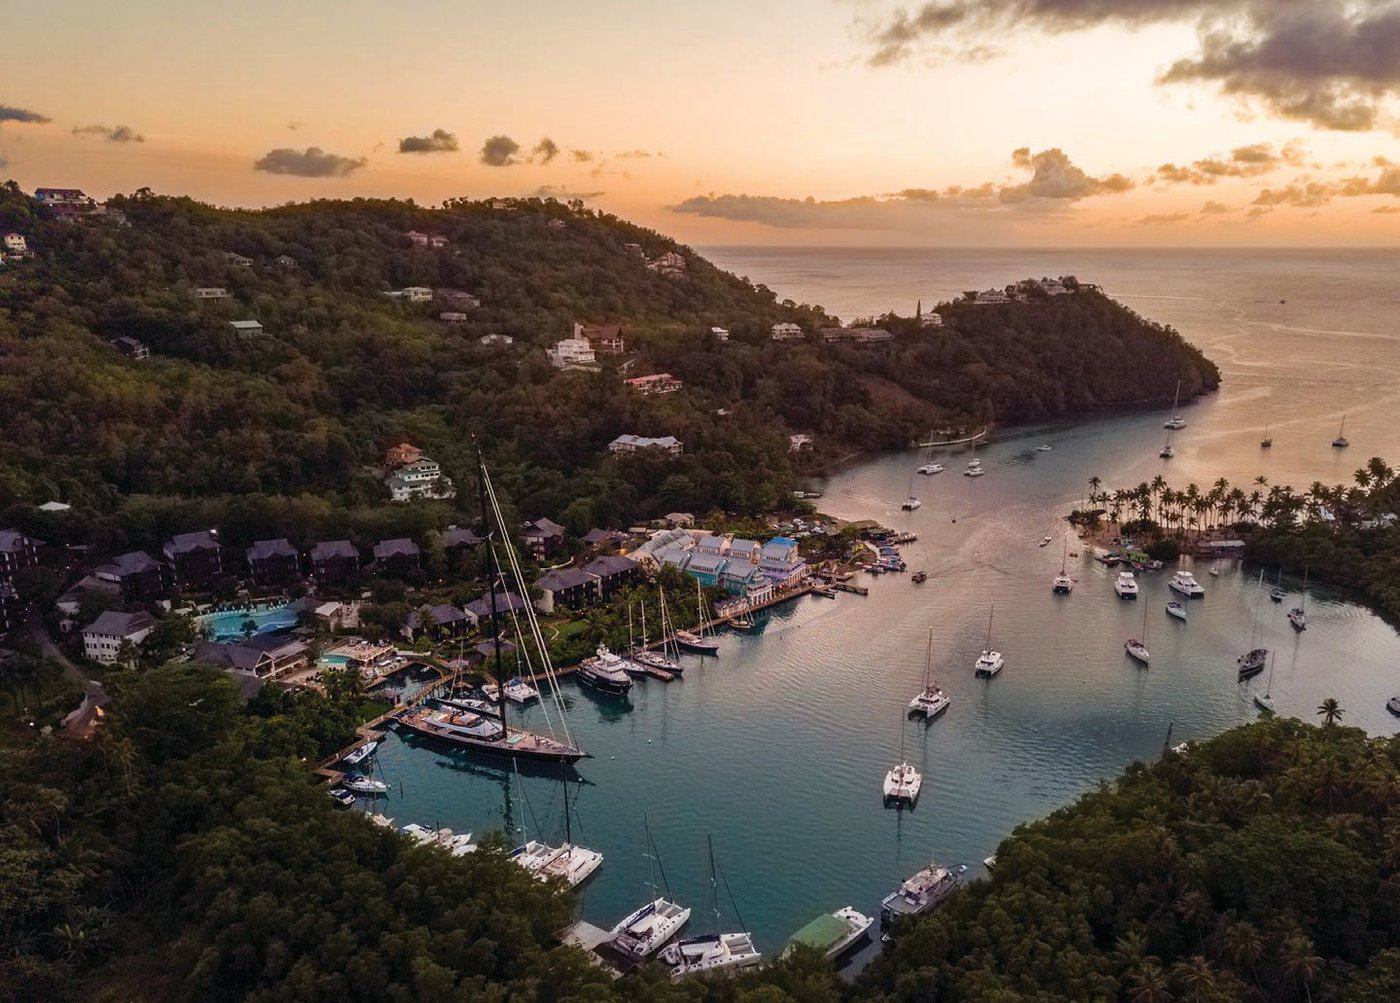 On the Marigot Bay Ridge Climb, located across the bay, enjoy spectacular views of Marigot Bay as you hike PHOTO BY ROBERT RECK/COURTESY OF MARIGOT BAY RESORT AND MARINA